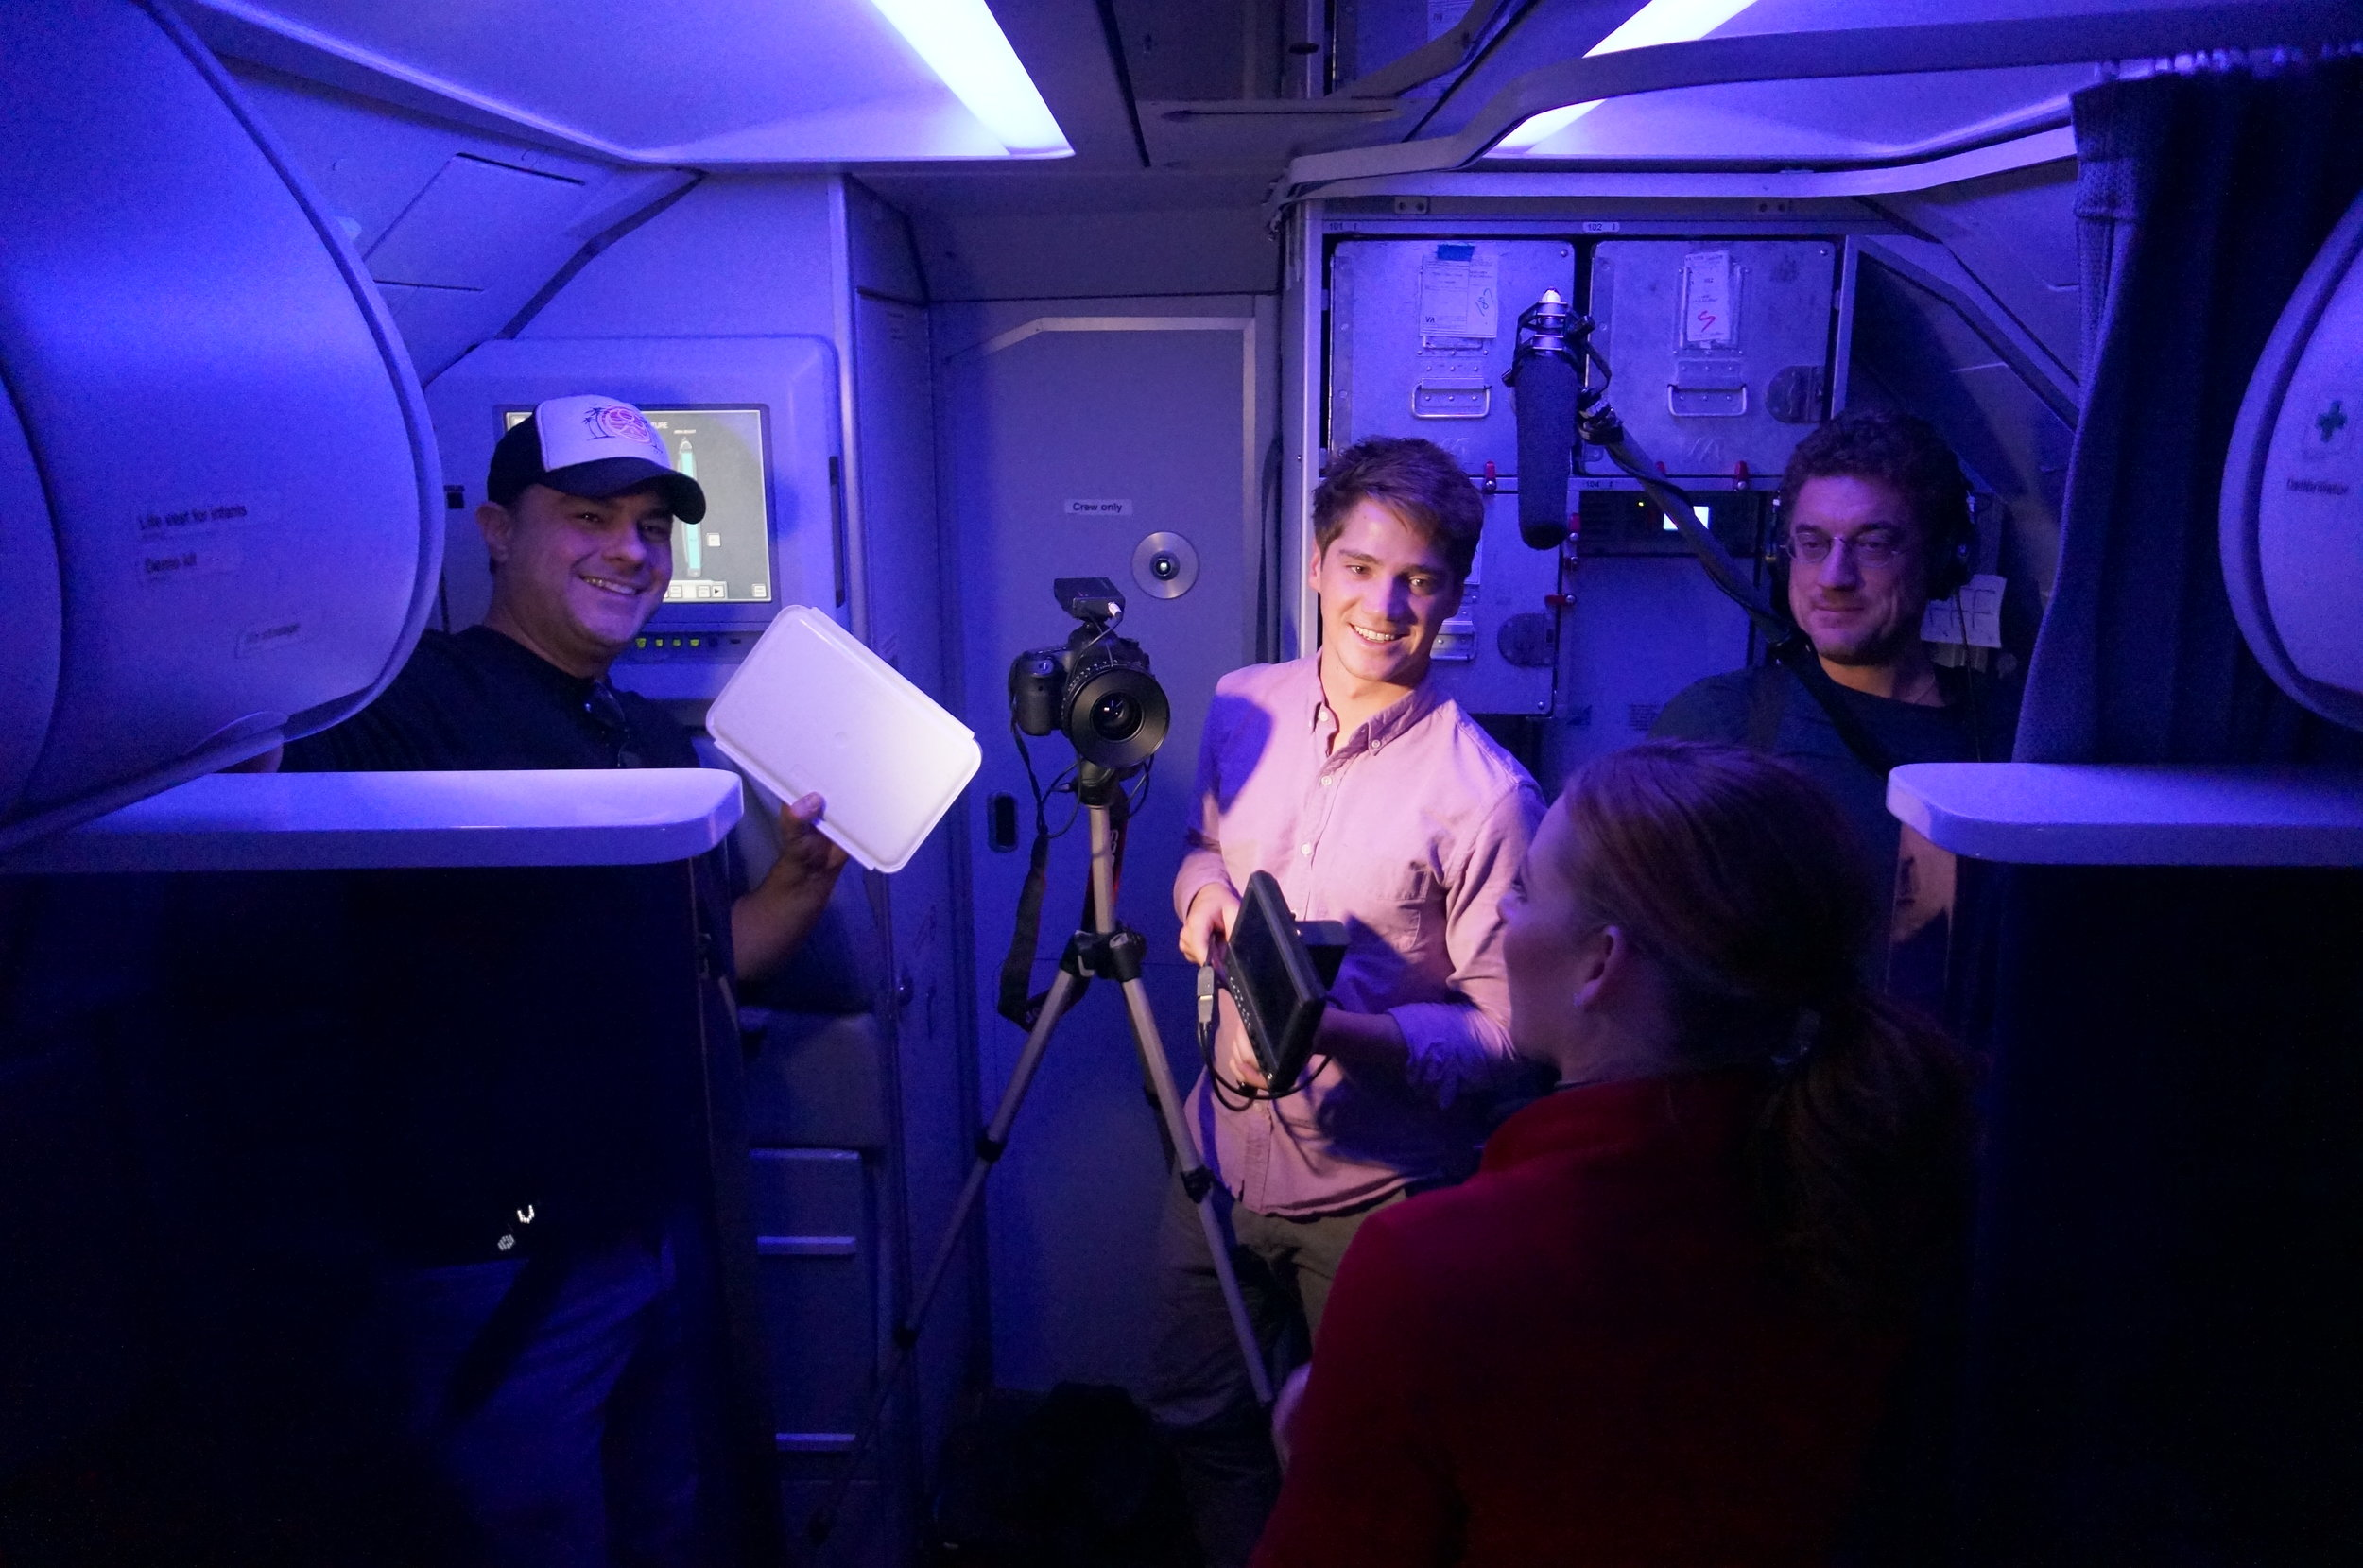 Brainstorm's crew filming  an interview at 30,000 over Colorado.